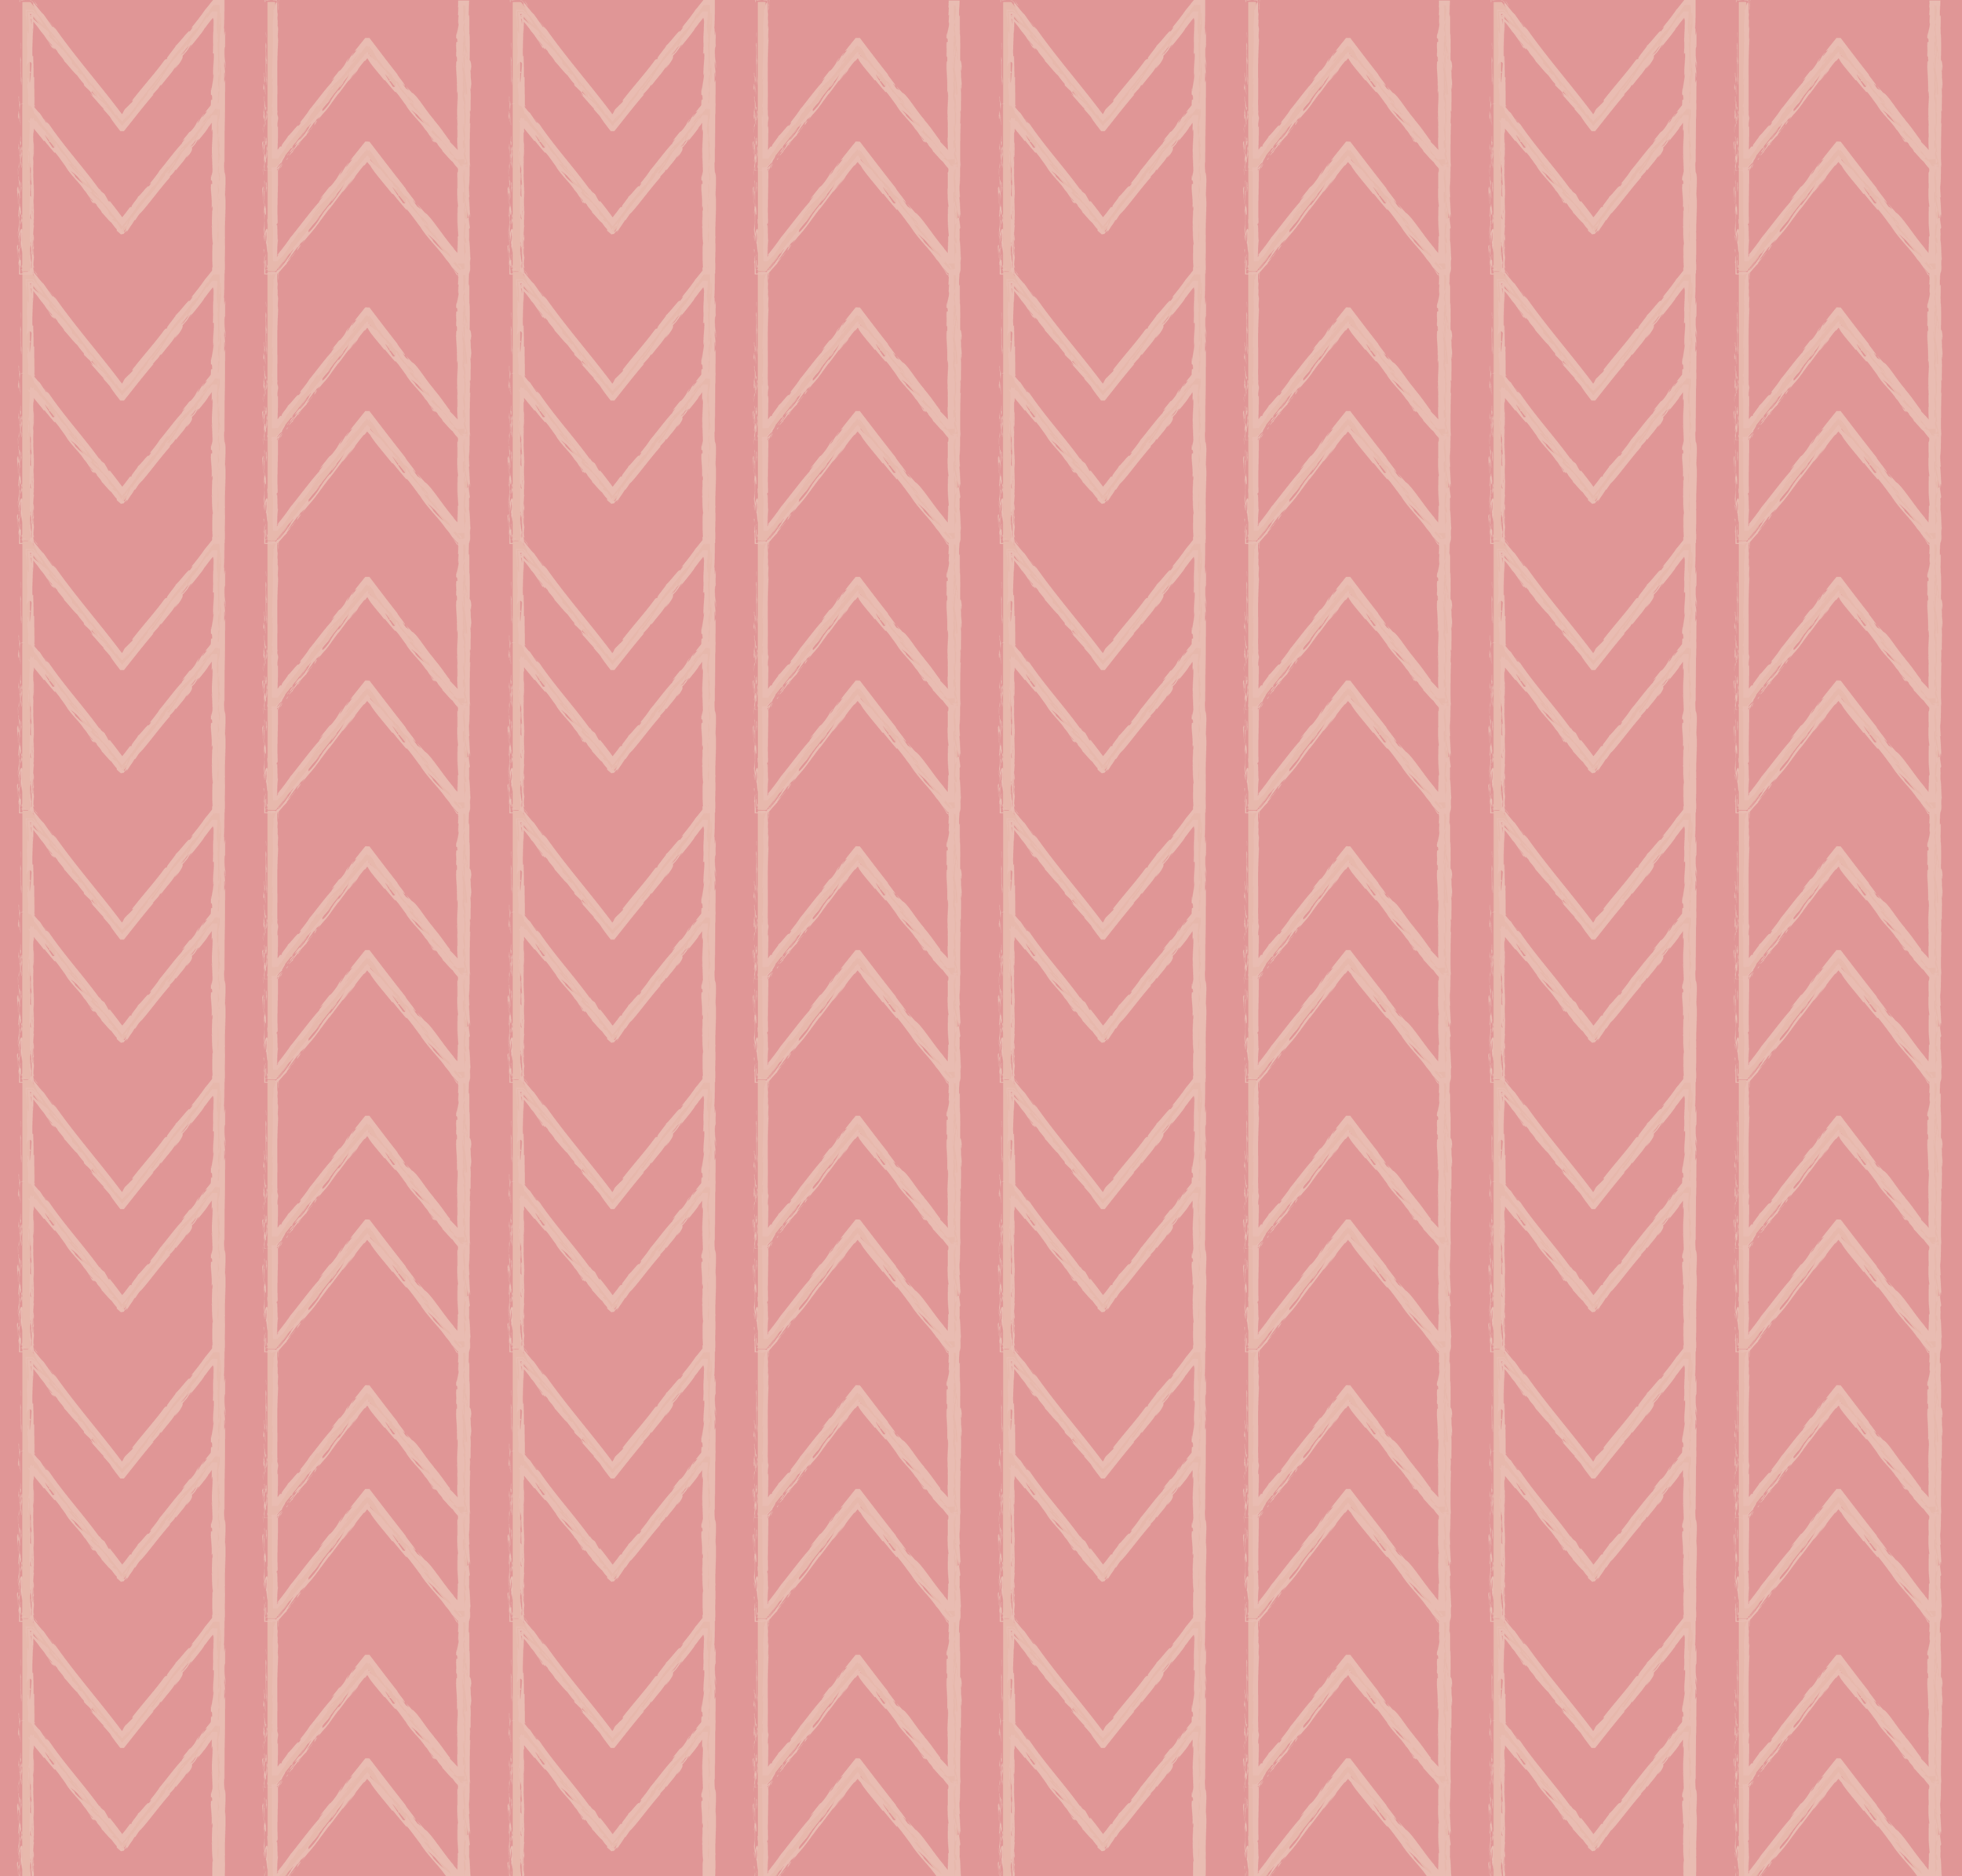 Pattern_M Stack - Rouge.png